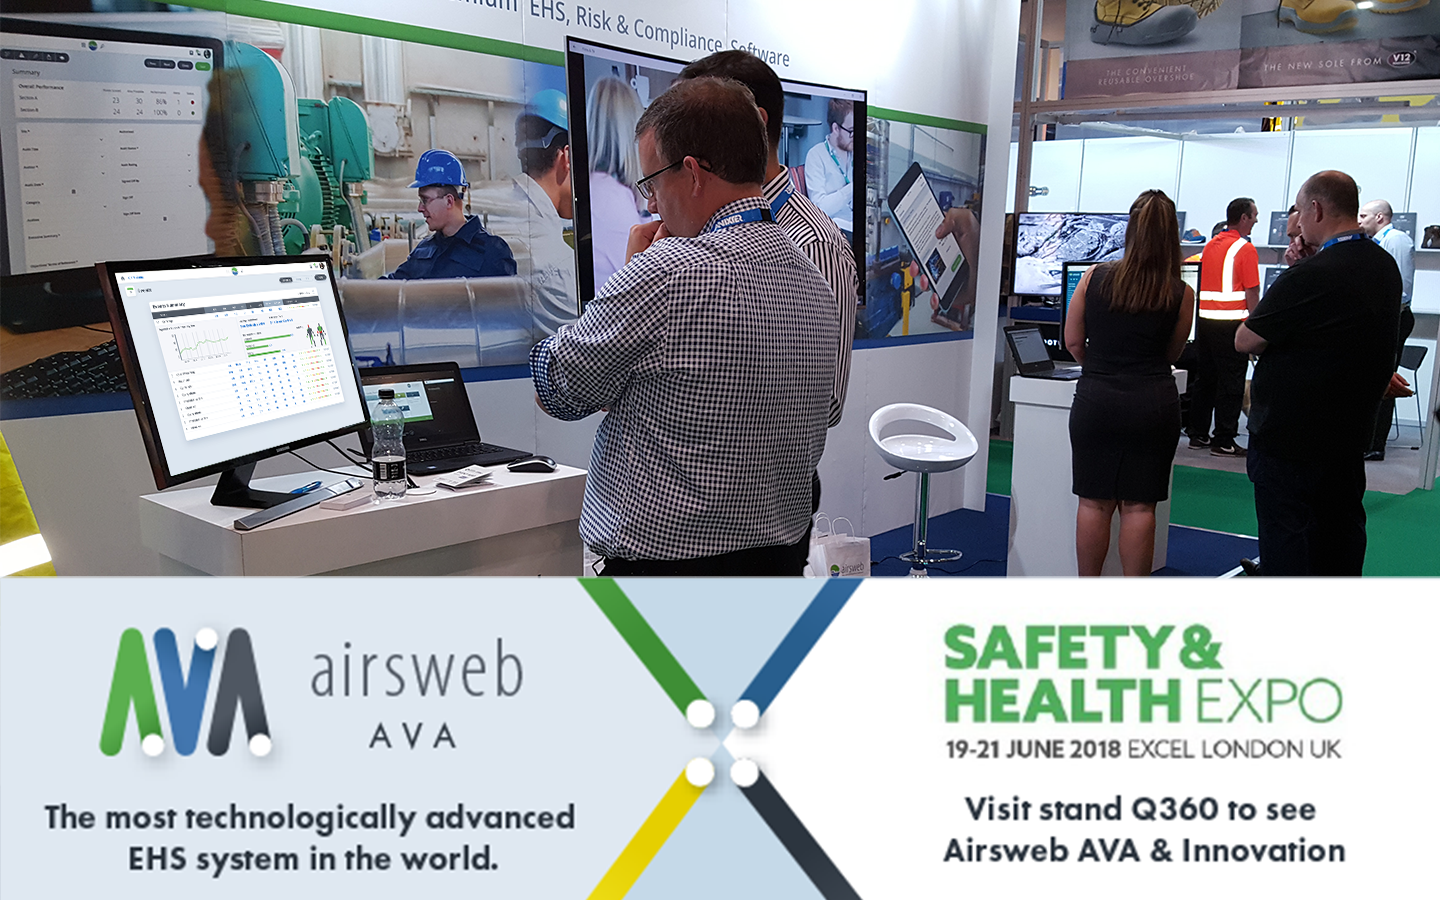 AVA demo at the Safety & Health Expo